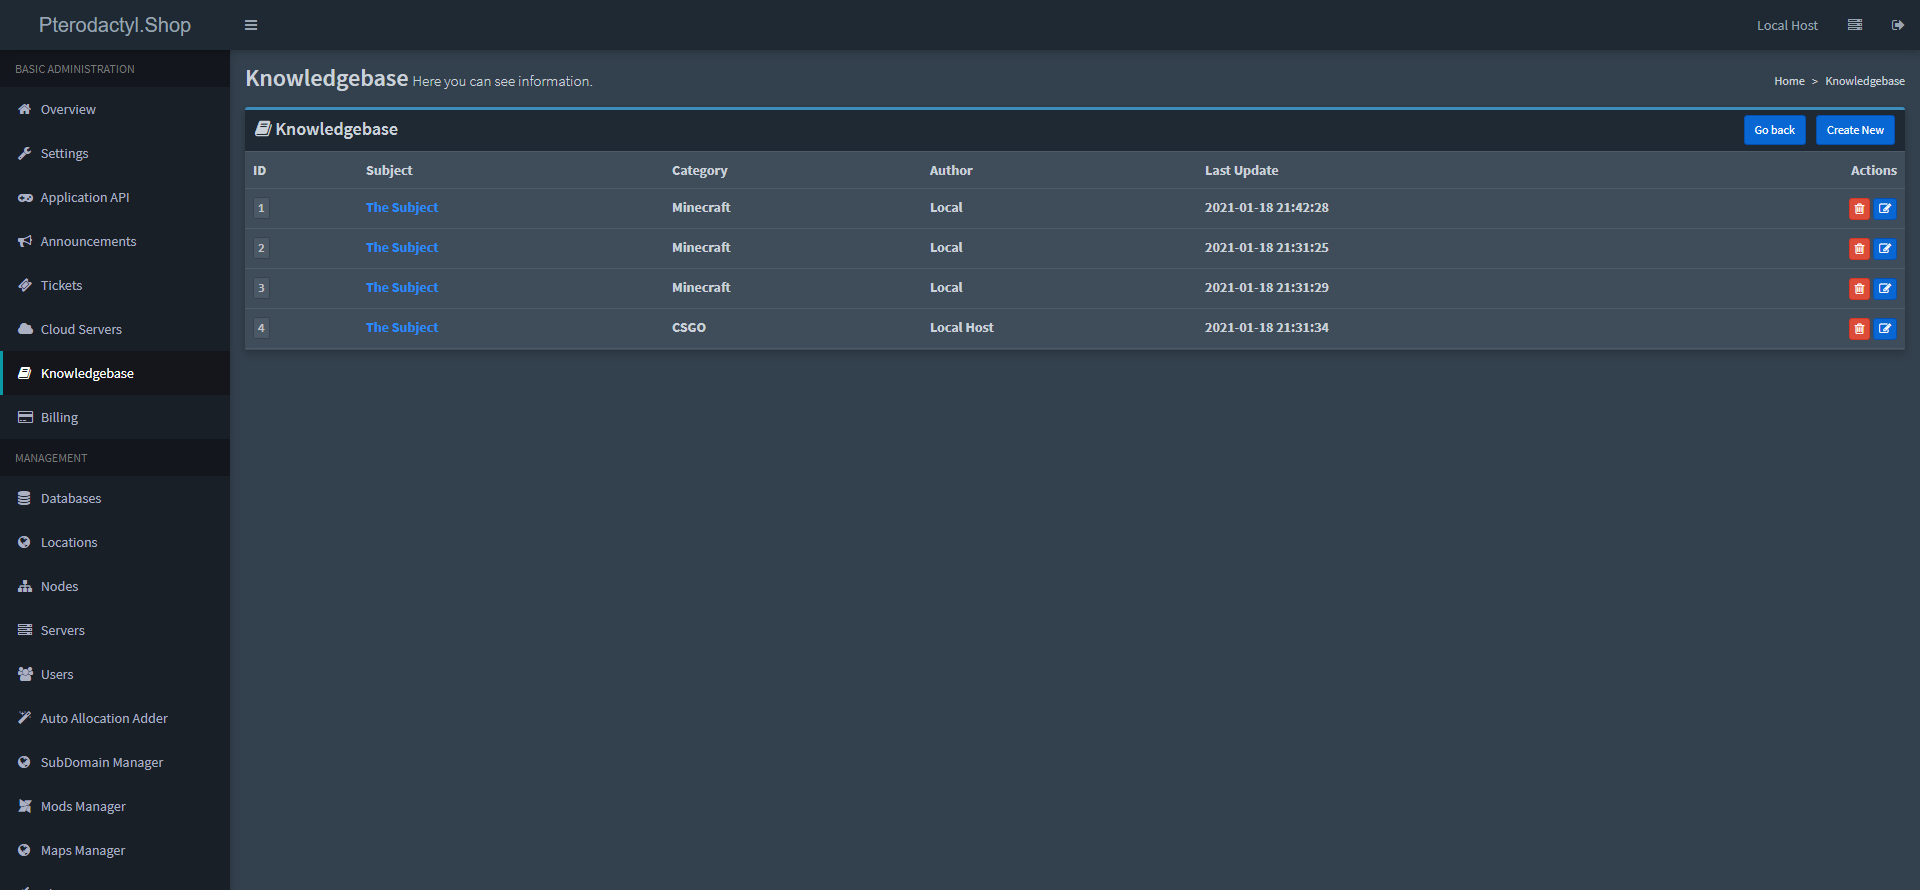 screencapture-panel1-pterodactyl-addons-admin-knowledgebase-questions-2021-01-19-03-48-34